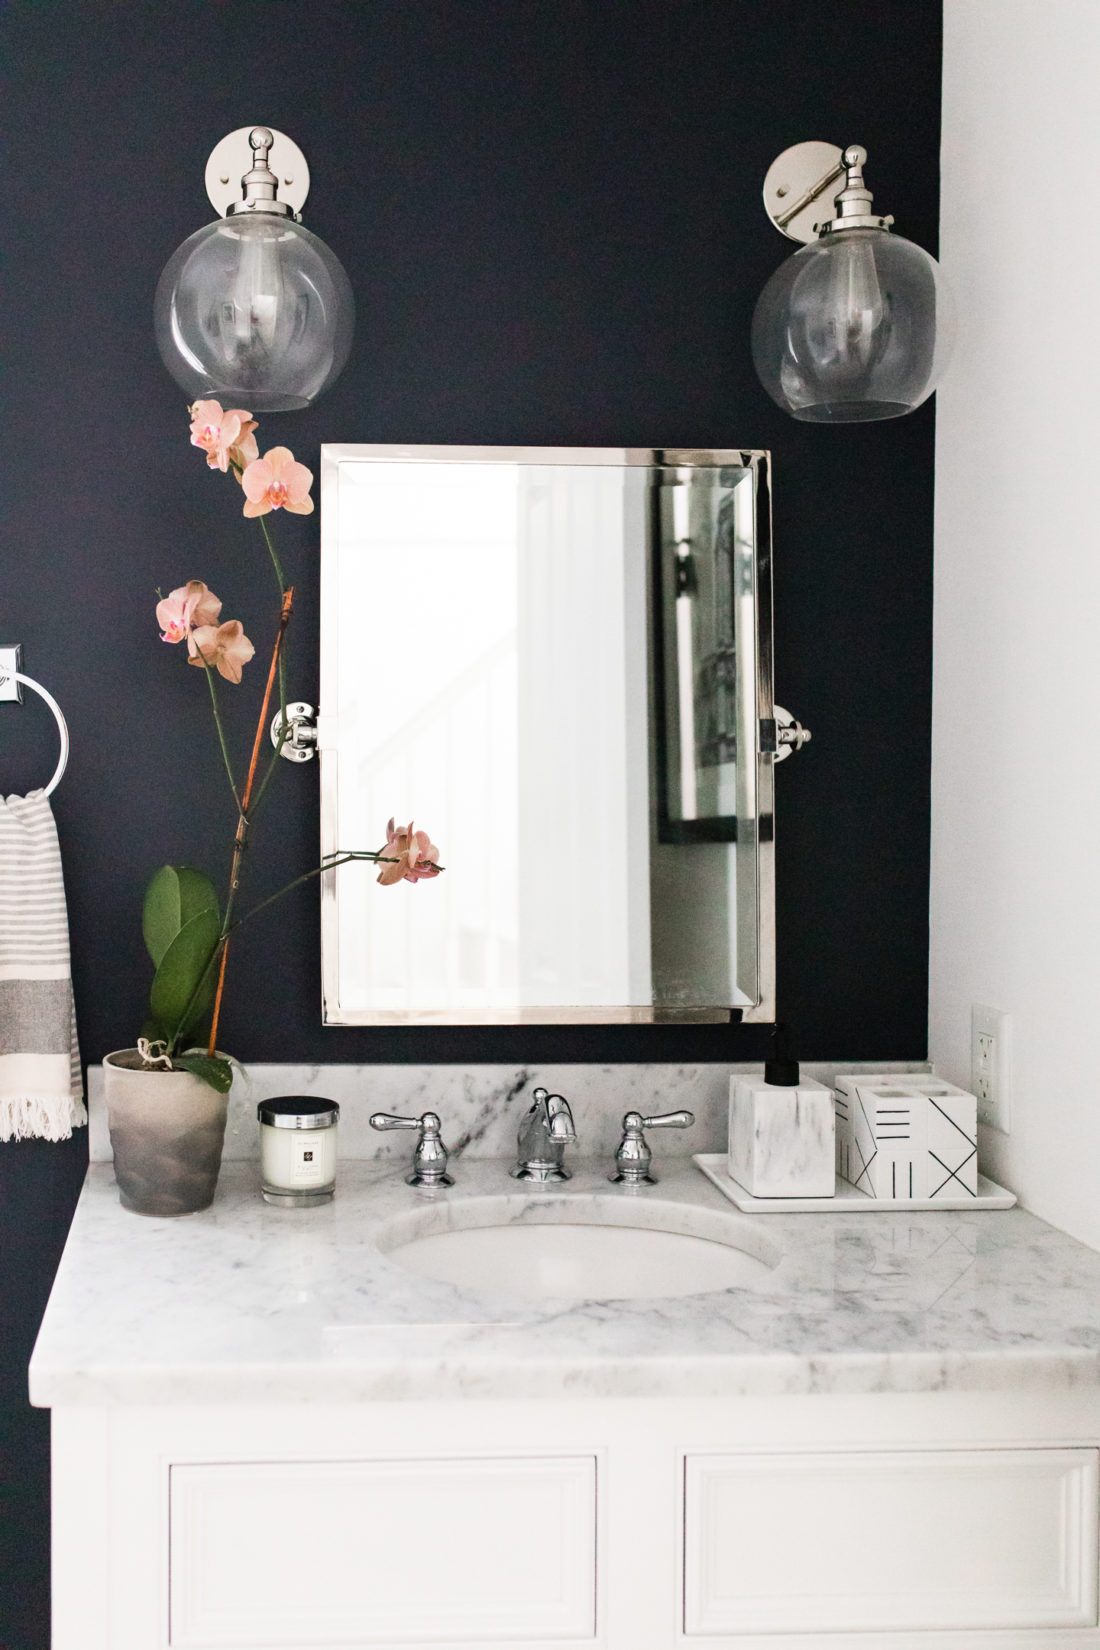 The wall sconces, vintage mirror, and marble vanity of Eva Amurri Martino's Connecticut powder room